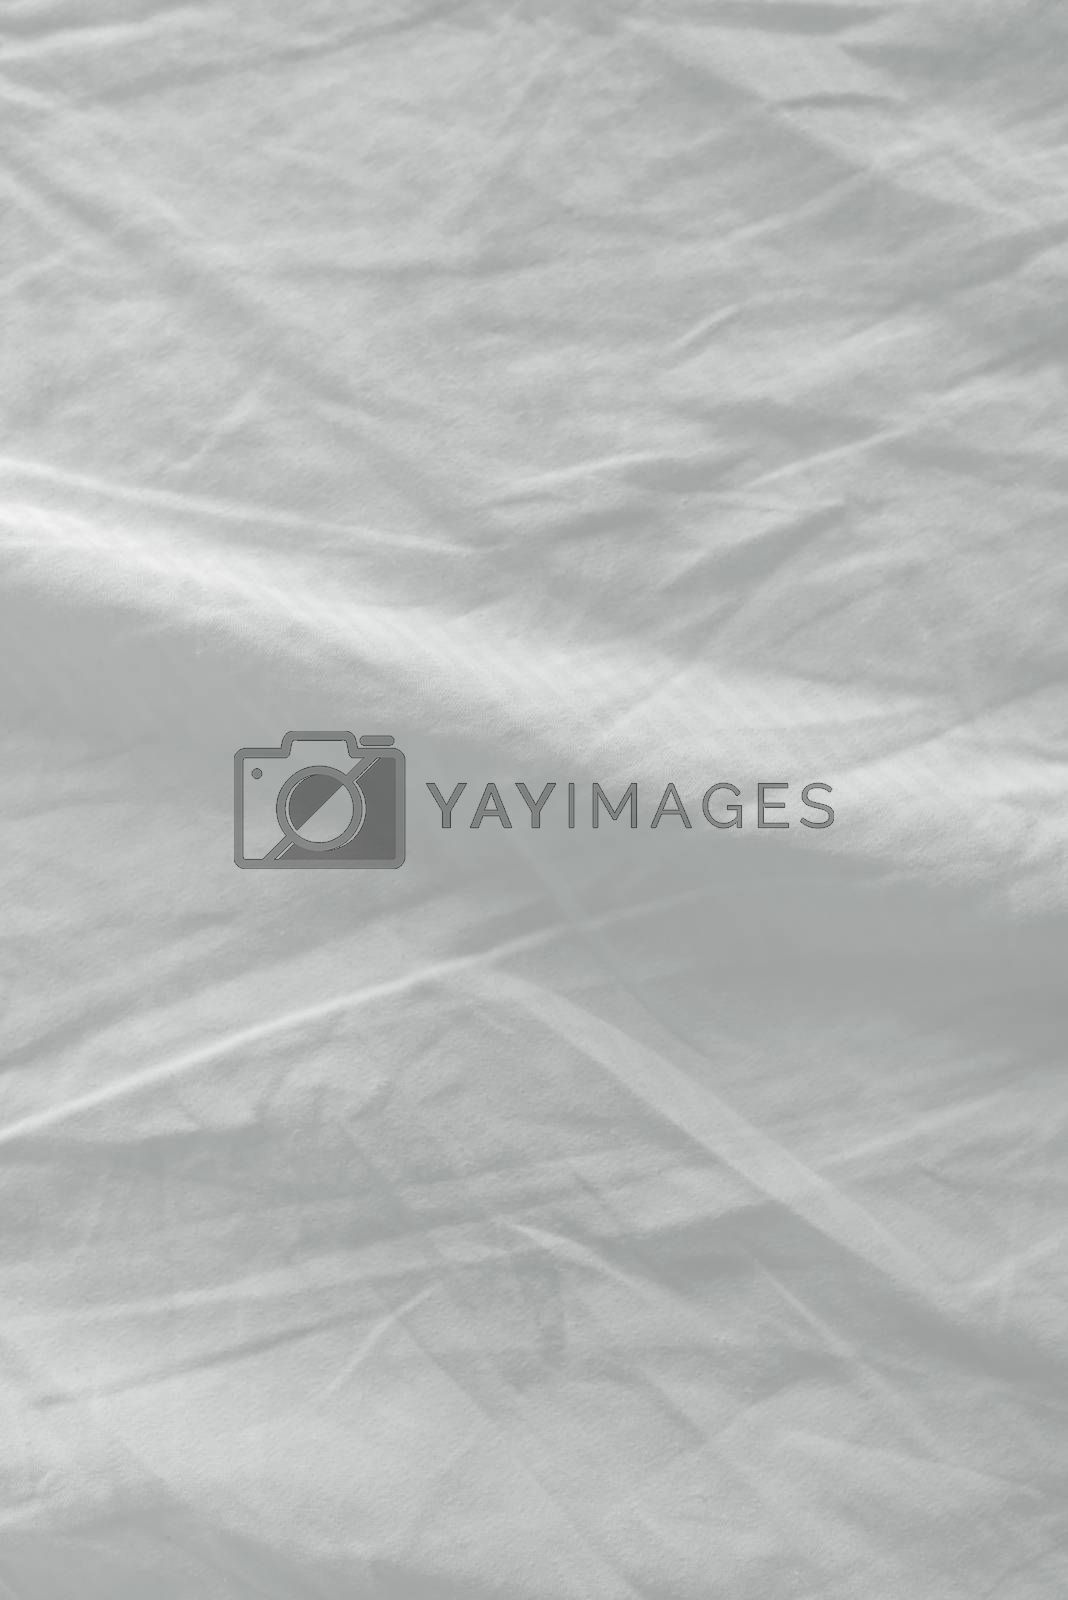 Used bed sheets texture, clean white crumpled cotton material surface